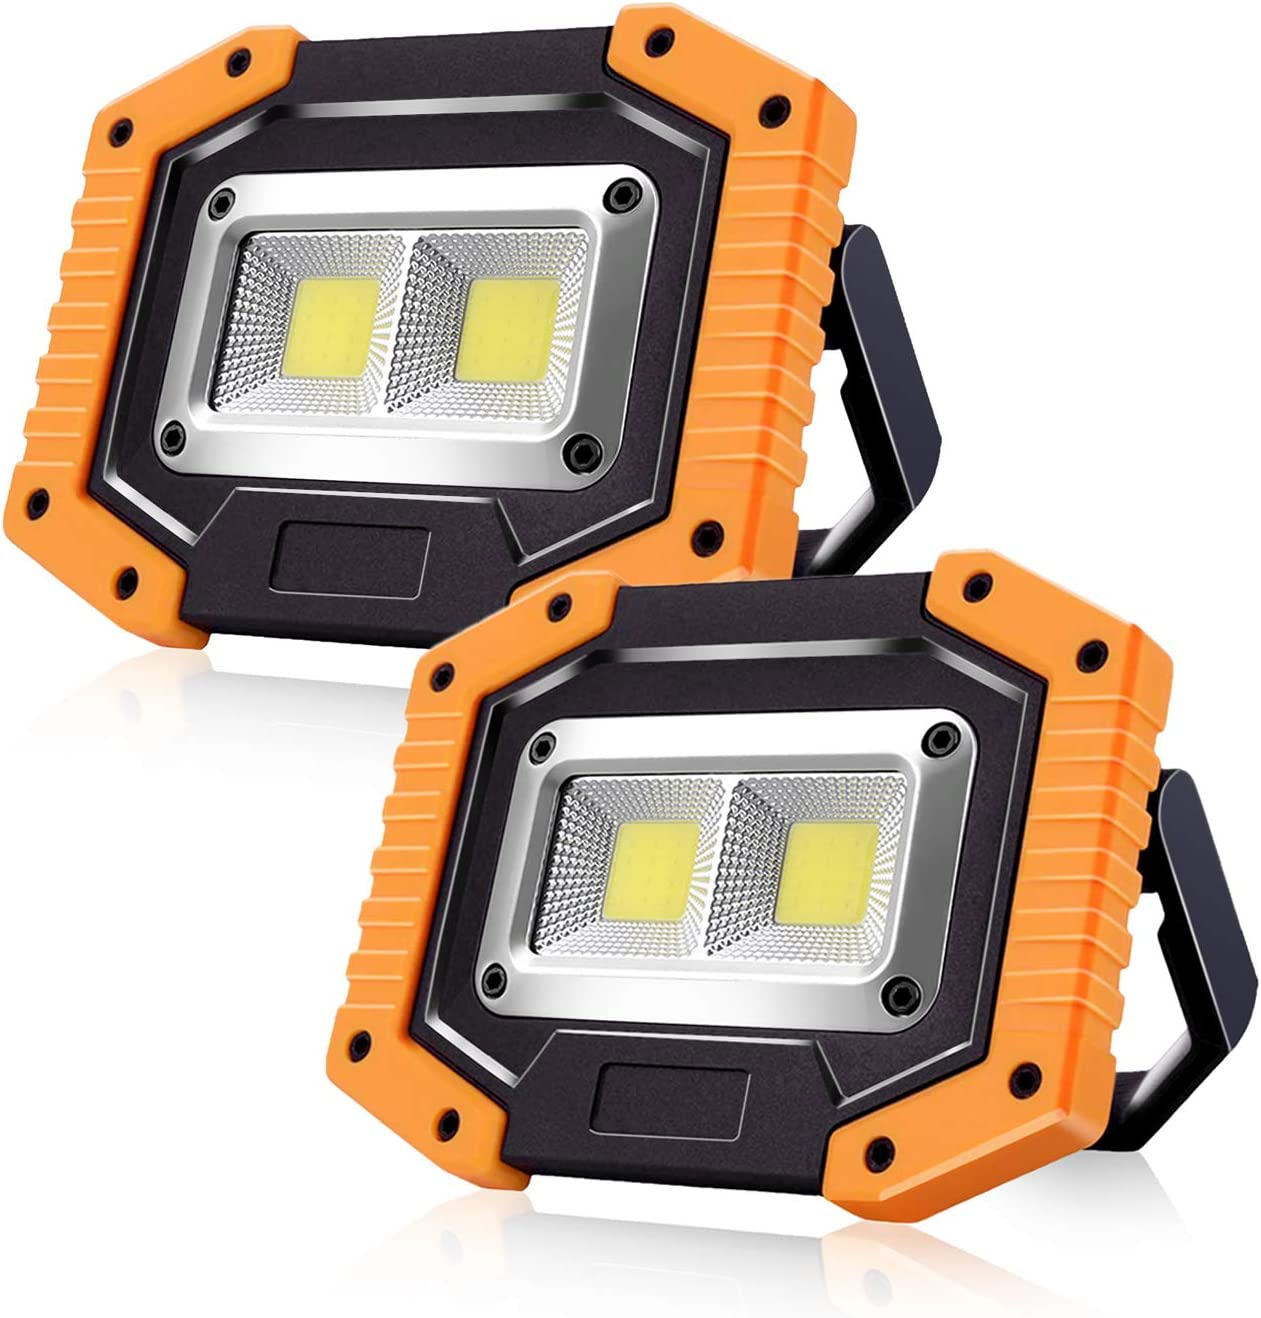 Portable Led Work Lights Sonee Rechargeable Cob Work Light Waterproof Led Flood Light With Stand Built In Power Bank Job Site Light For Indoor Outdoor Lighting Yellow 2pack Amazon Com